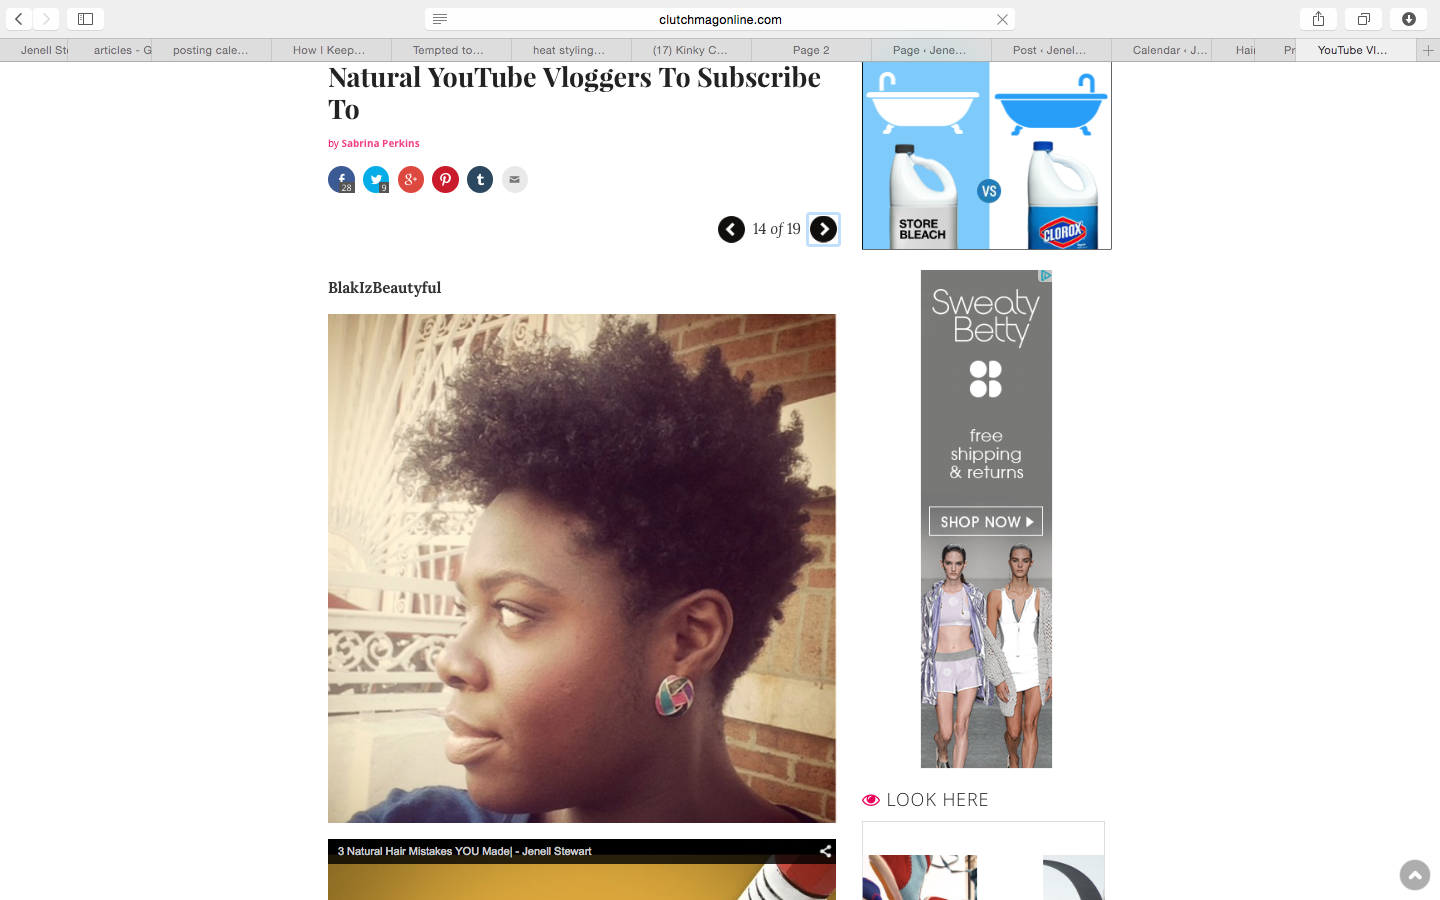 Clutch | Natural YT Vloggers to Subscribe To